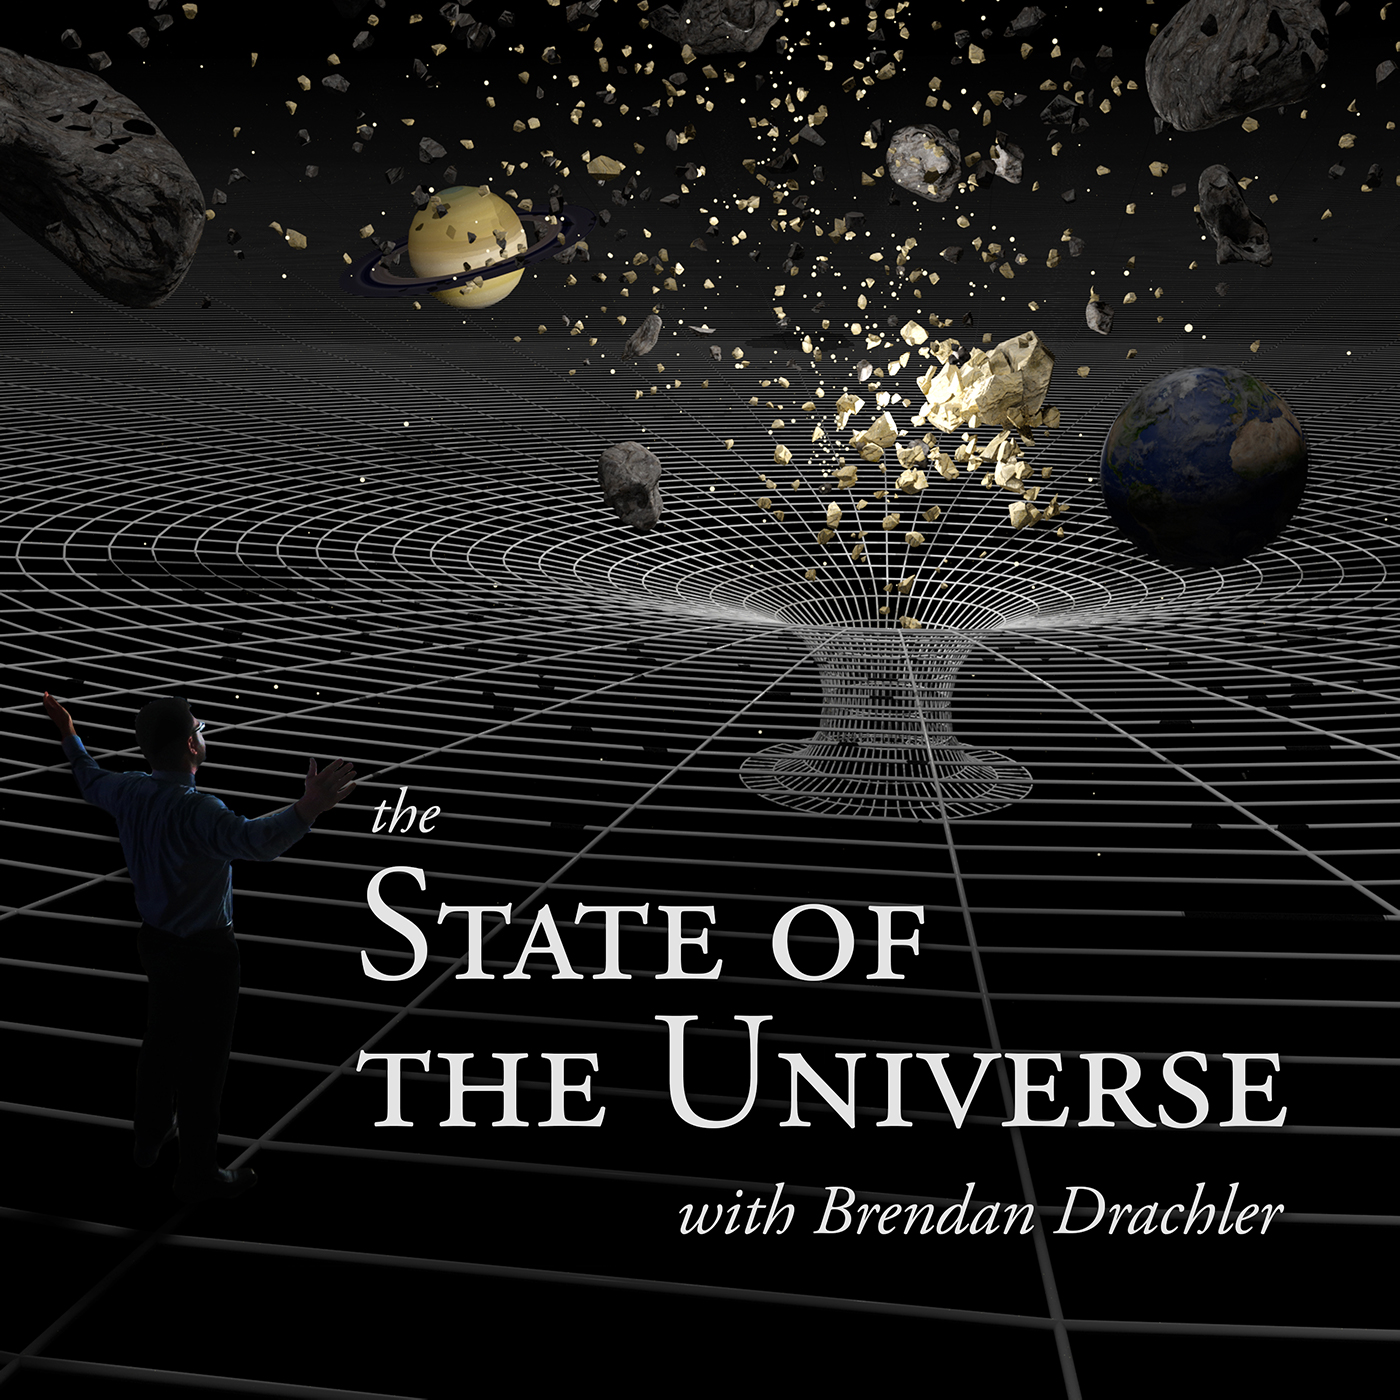 The Podcast - The State of the Universe (TSOTU) is an accessible science and social podcast hosted by Brendan Drachler. Listen to Brendan and other renowned members of the scholarly community discuss and explain cutting edge research and profound ideas.Check out the available episodes of The State of The Universe (TSOTU) and be sure to follow and subscribe to Brendan and the show on all forms of social media!